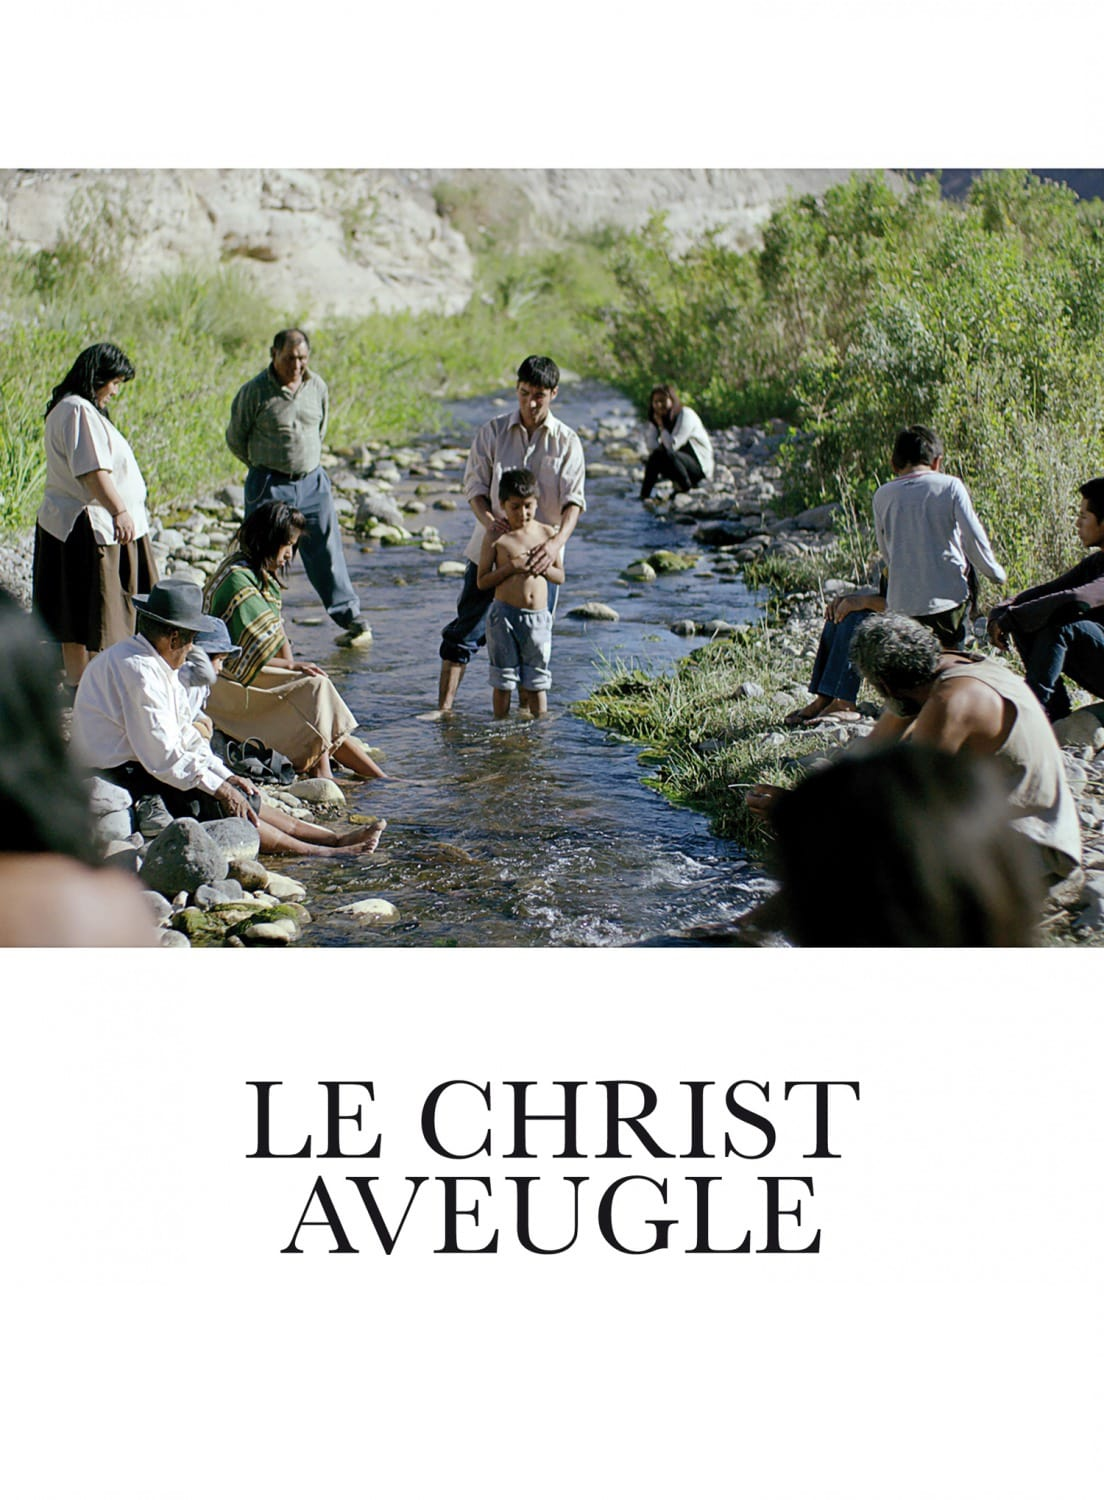 Le Christ aveugle streaming sur zone telechargement